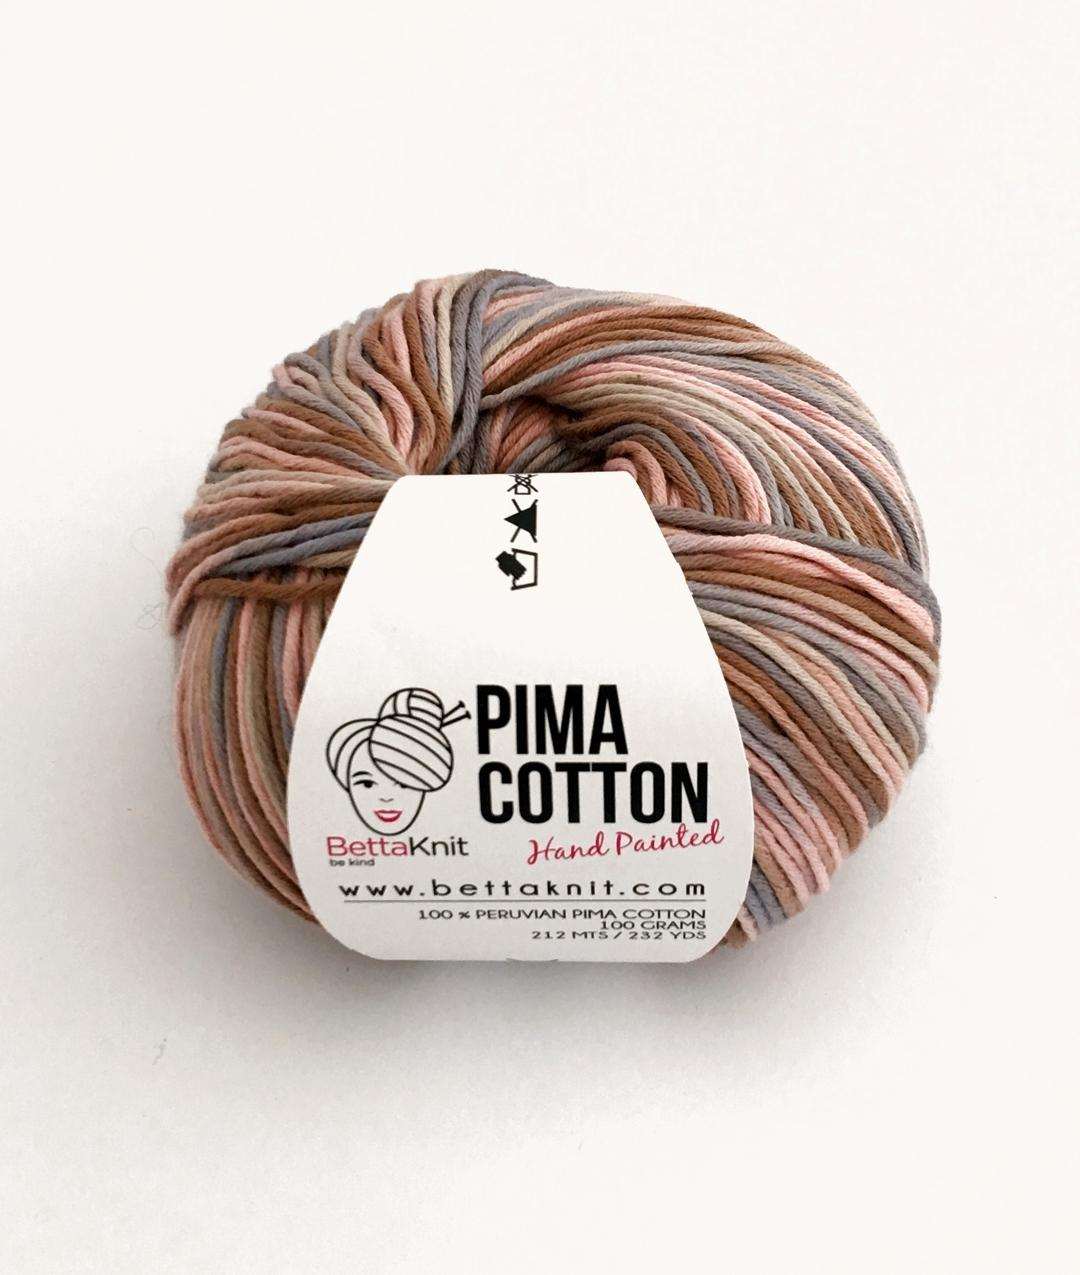 Pima Cotton Hand Painted Yarns Cotton Bettaknit